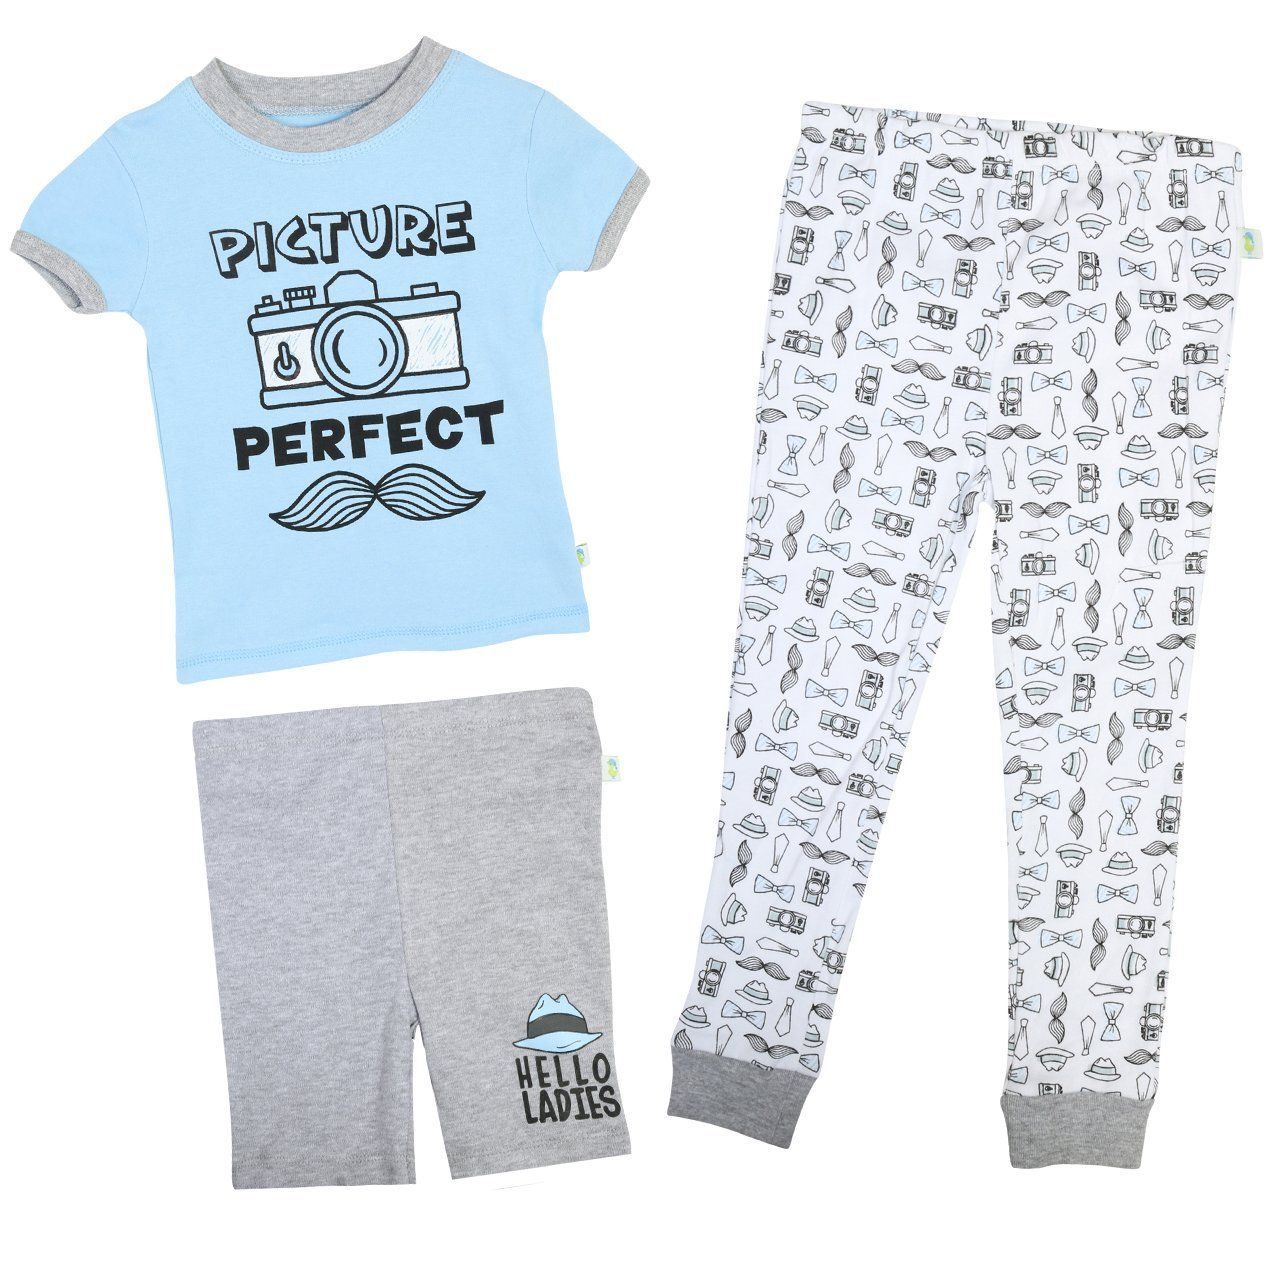 Duck Duck Goose Infant & Toddler Boys 3-Piece Snug-Fit Summer Pajama Set, Picture Perfect, 24 Months'